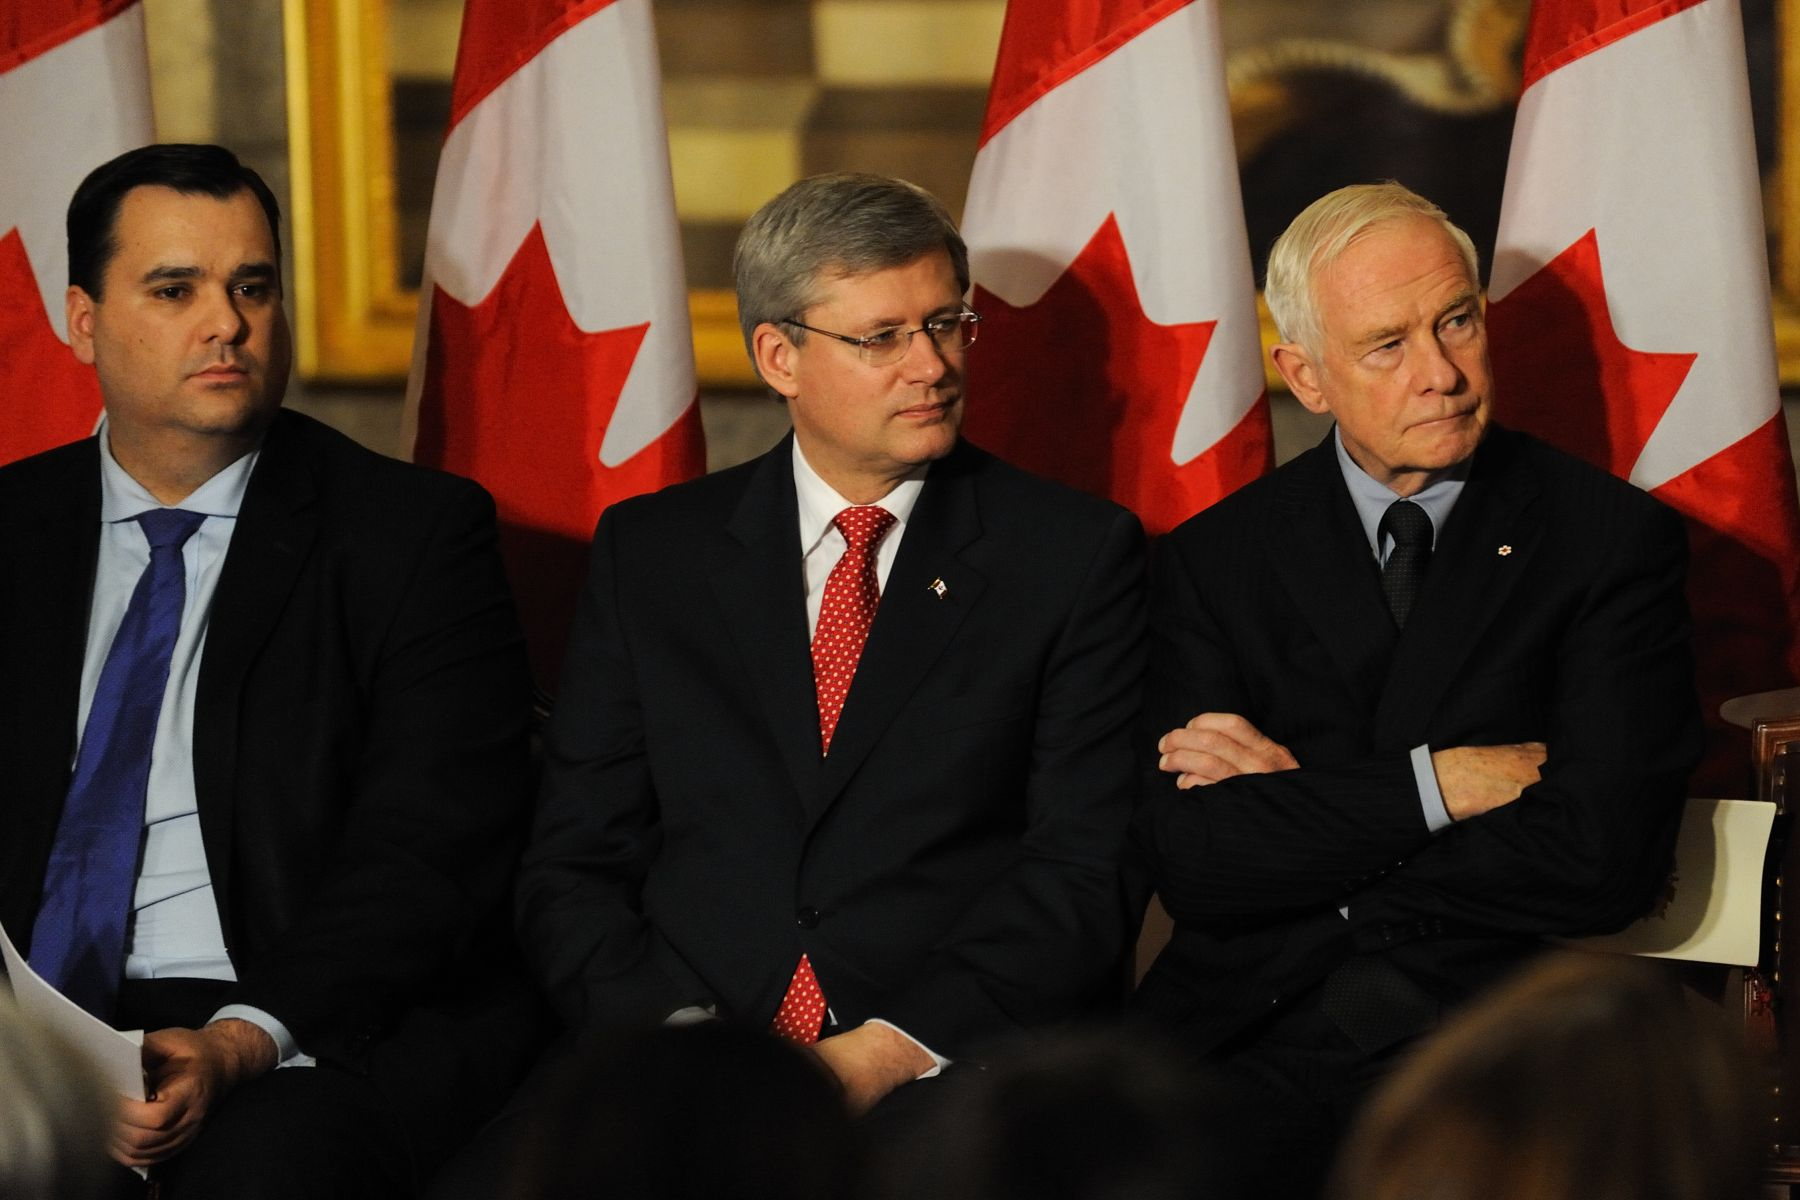 The Governor General was joined by the Right Honourable Stephen Harper and the Honourable James Moore, Minister of Canadian Heritage and Official Languages.